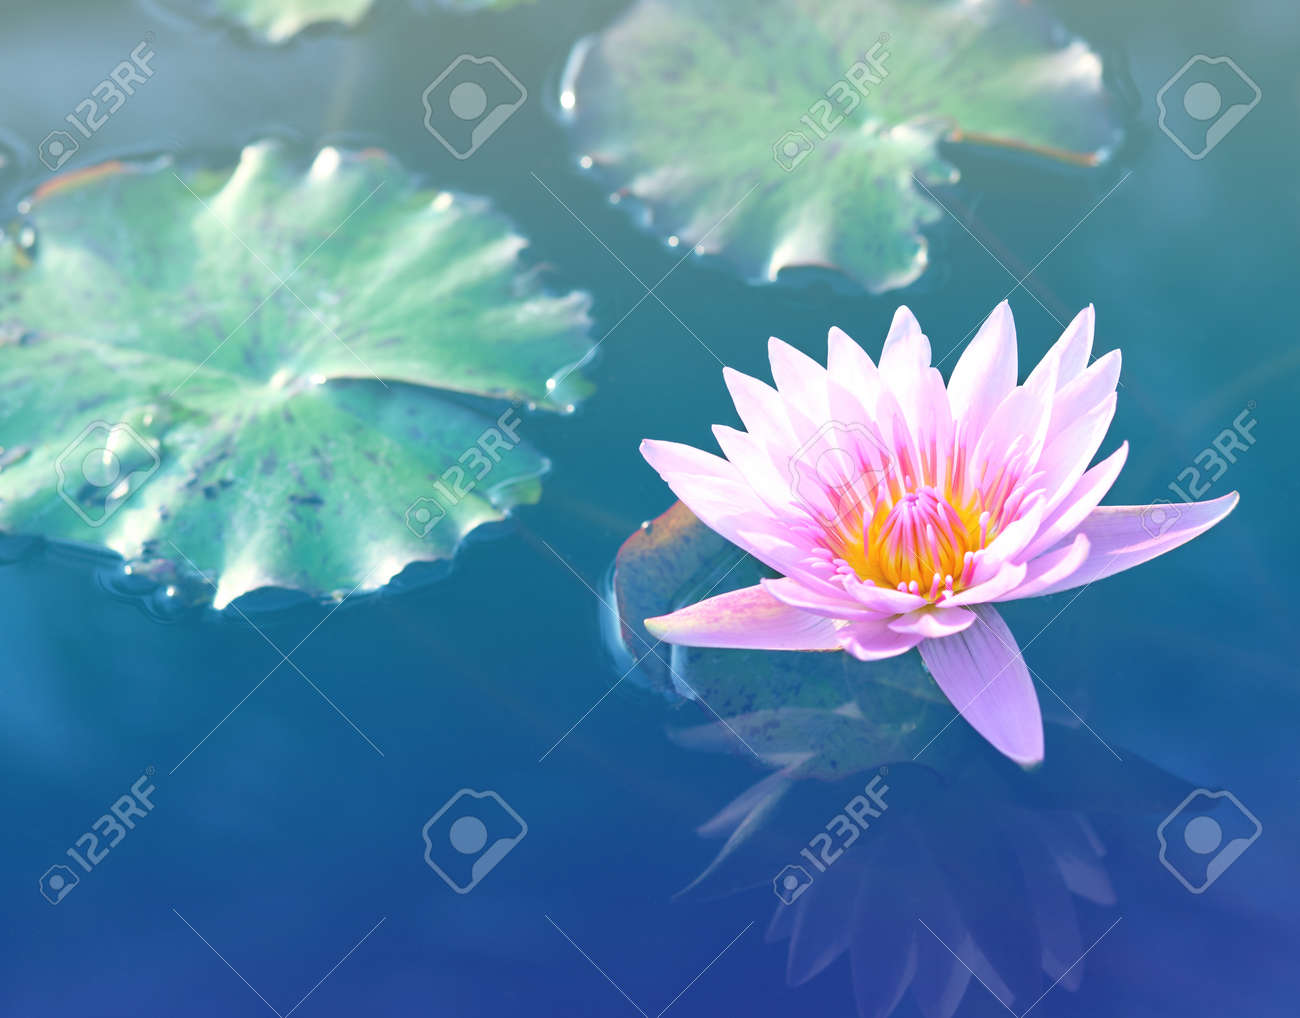 Pink Lotus Flower Lotus Blossoms Or Water Lily Flowers Blooming